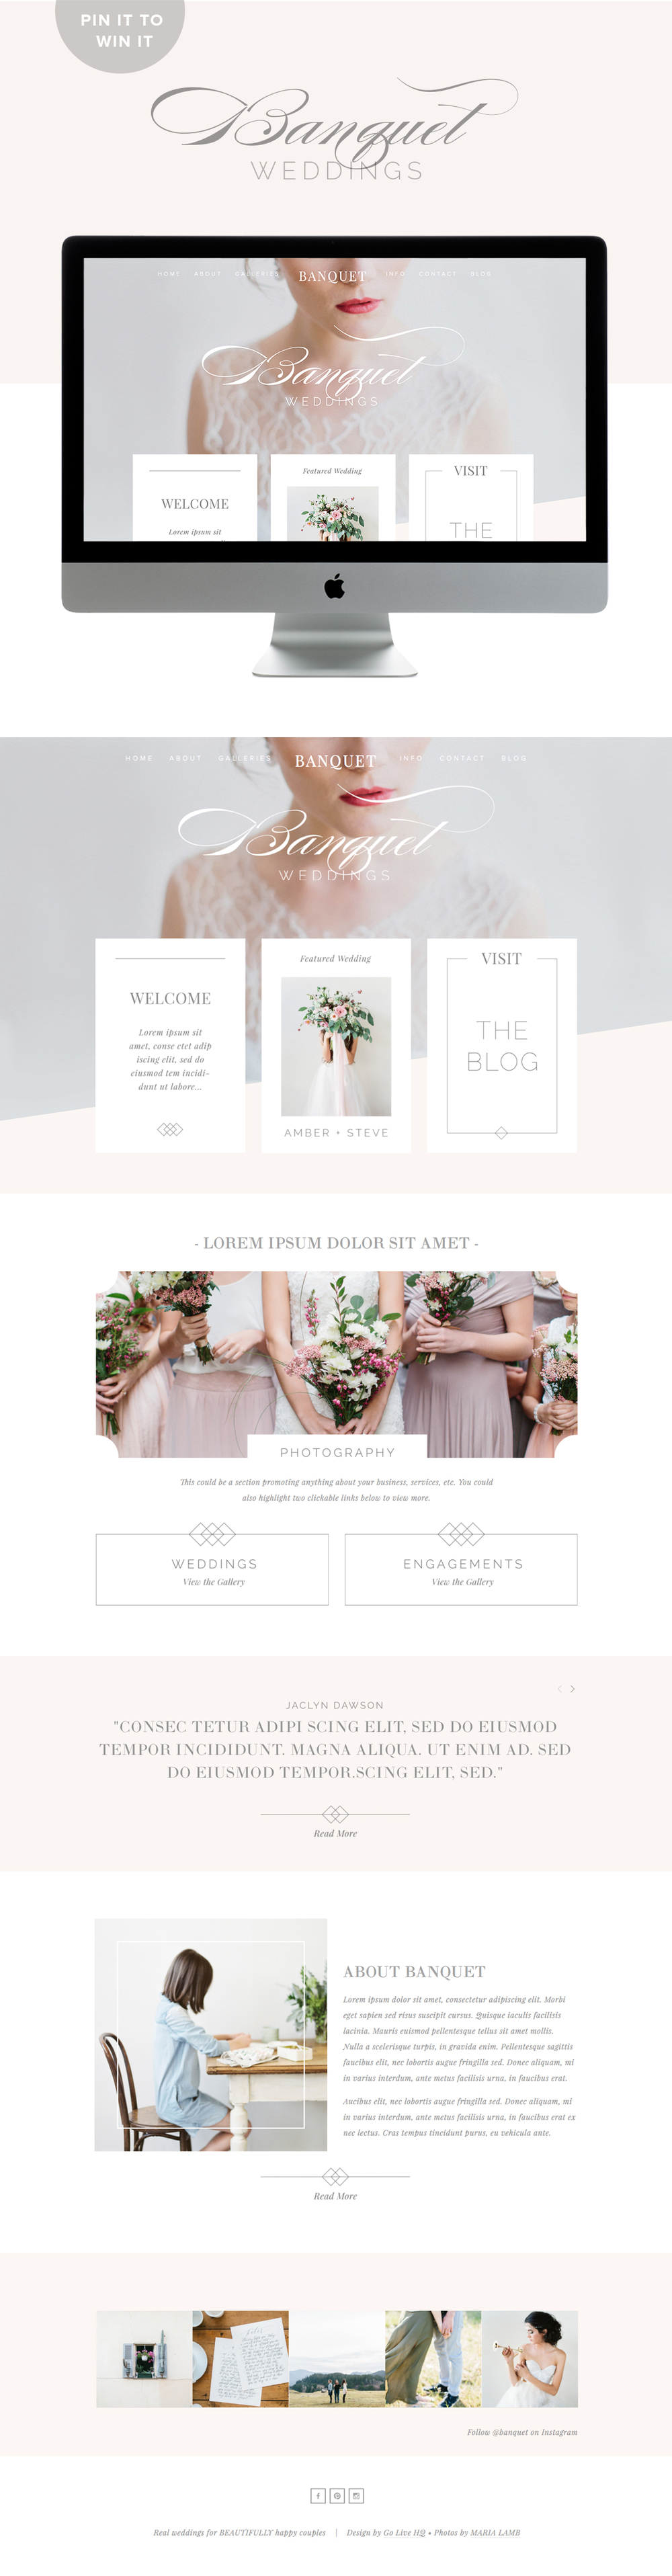 pretty modern squarespace template by golivehq.co